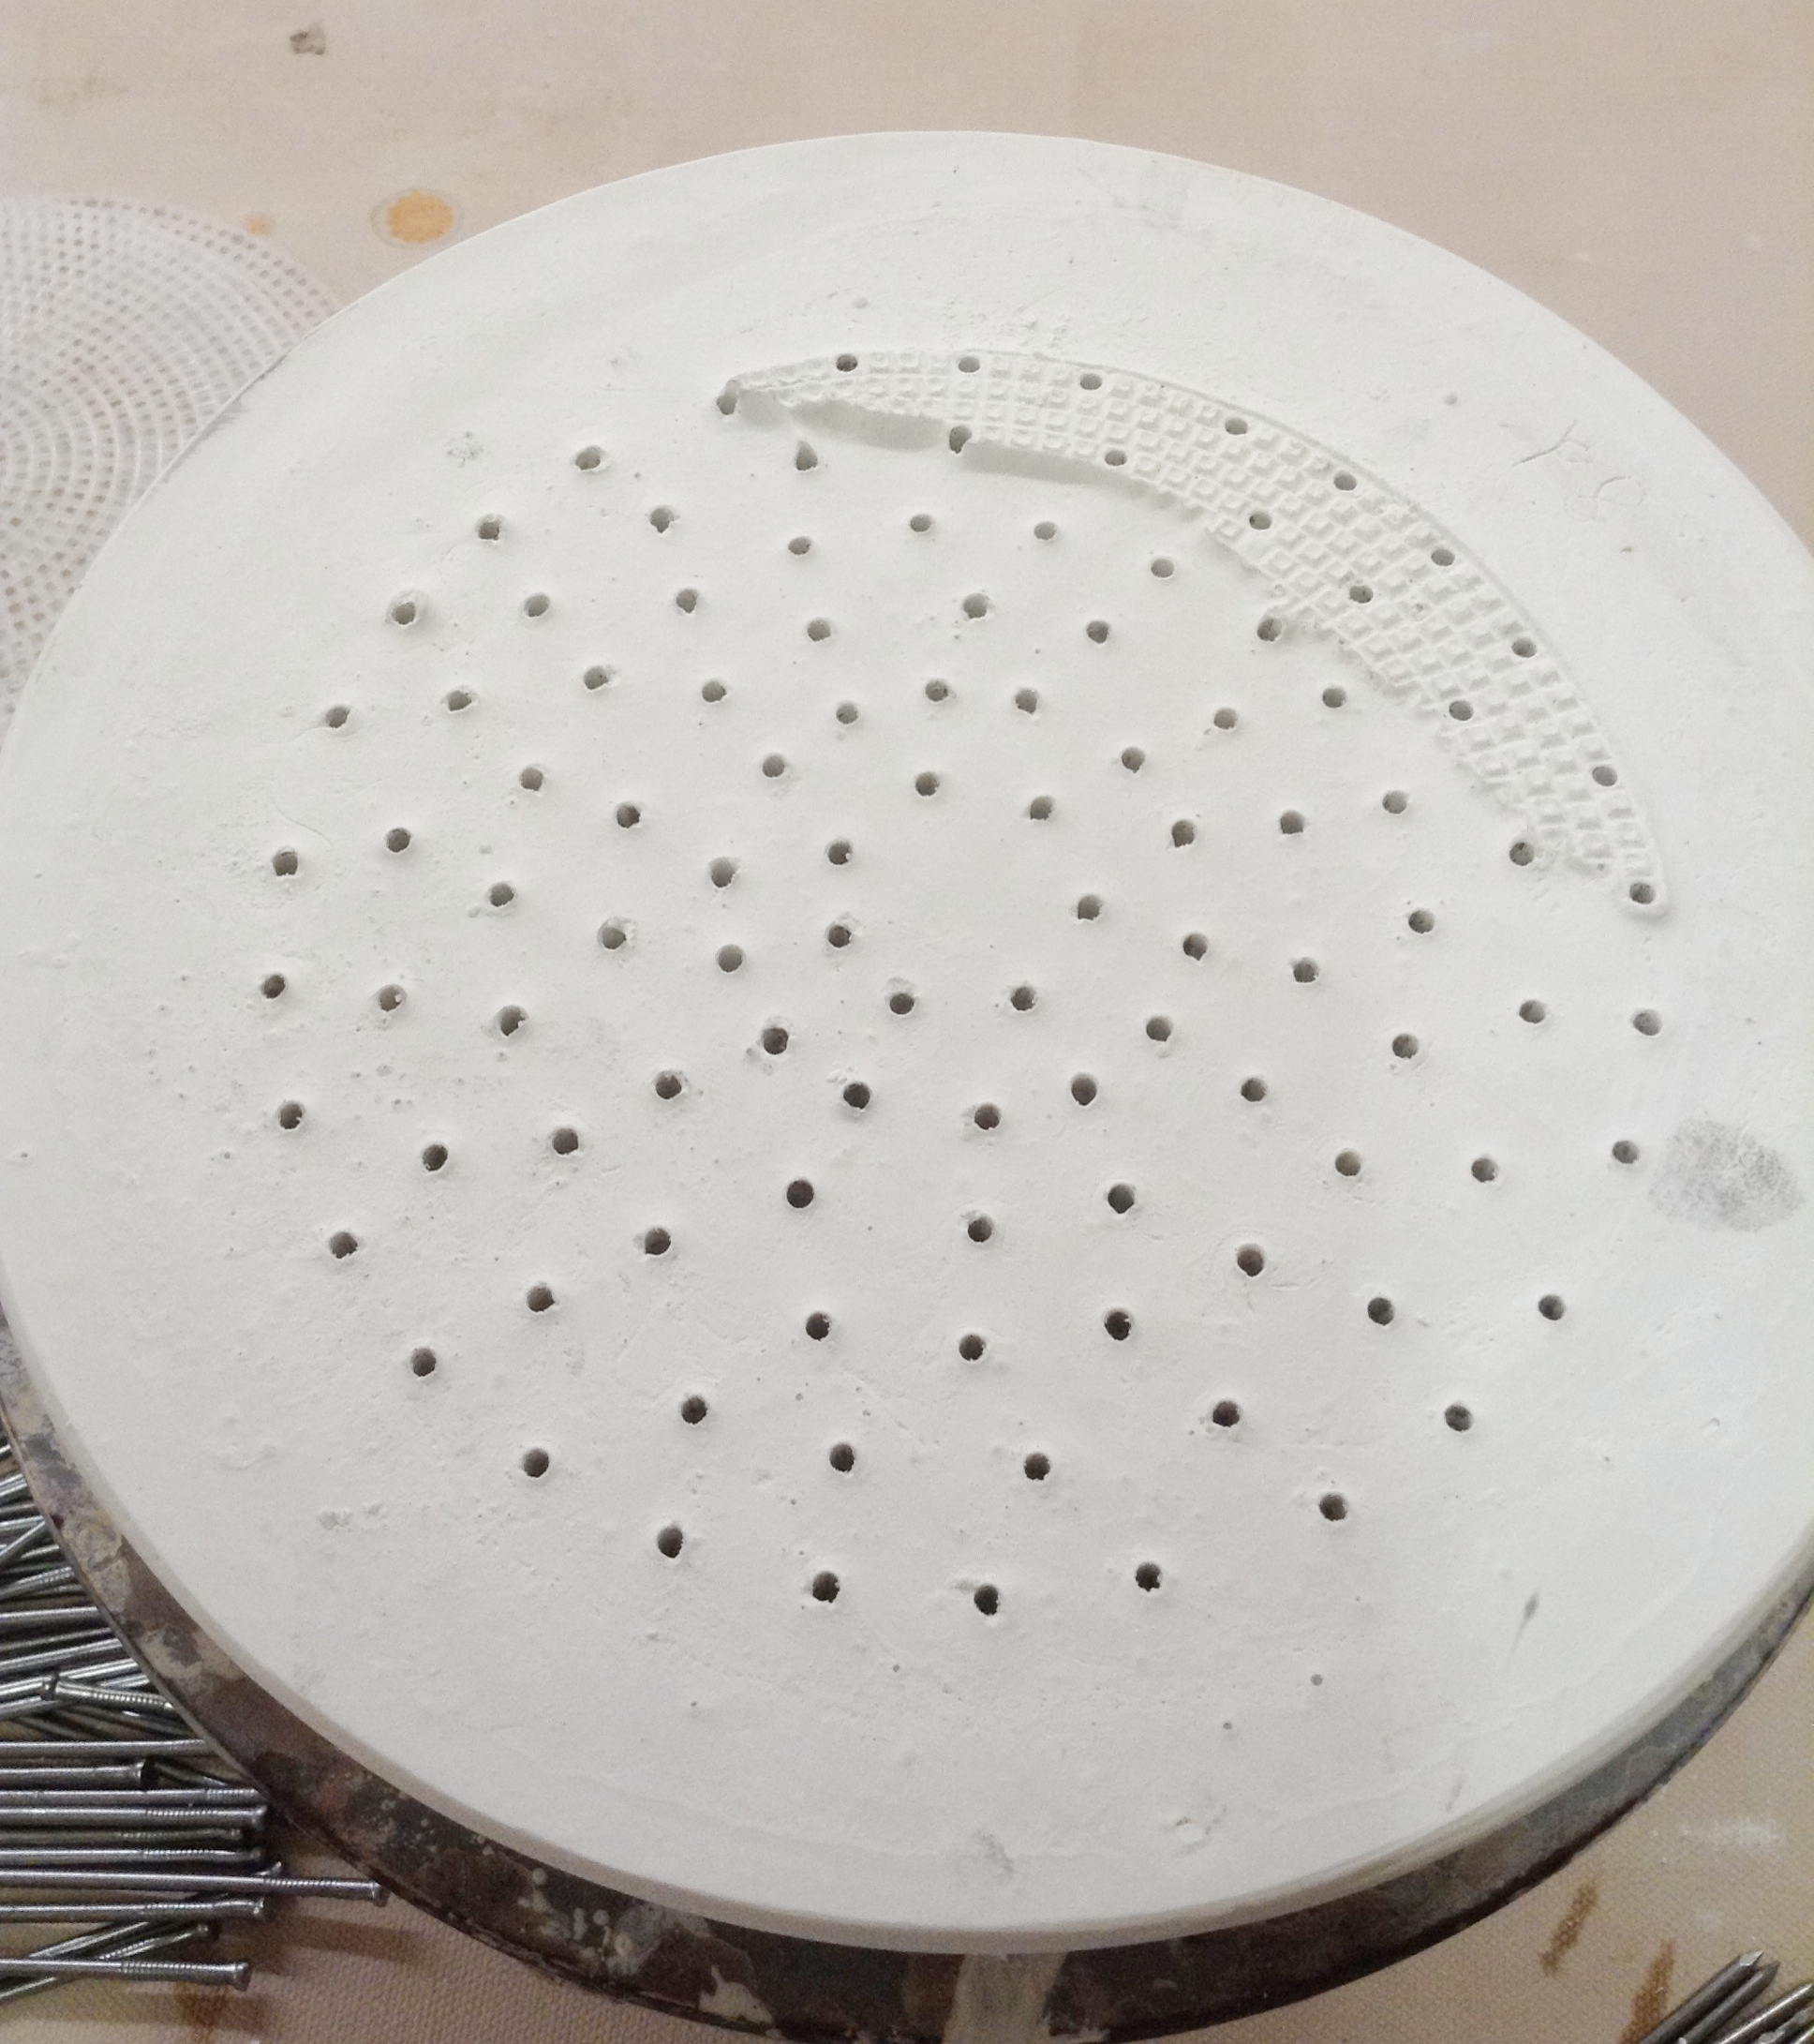 Round array made of plaster. Holes are about 1/2 inch deep to accept rod material.